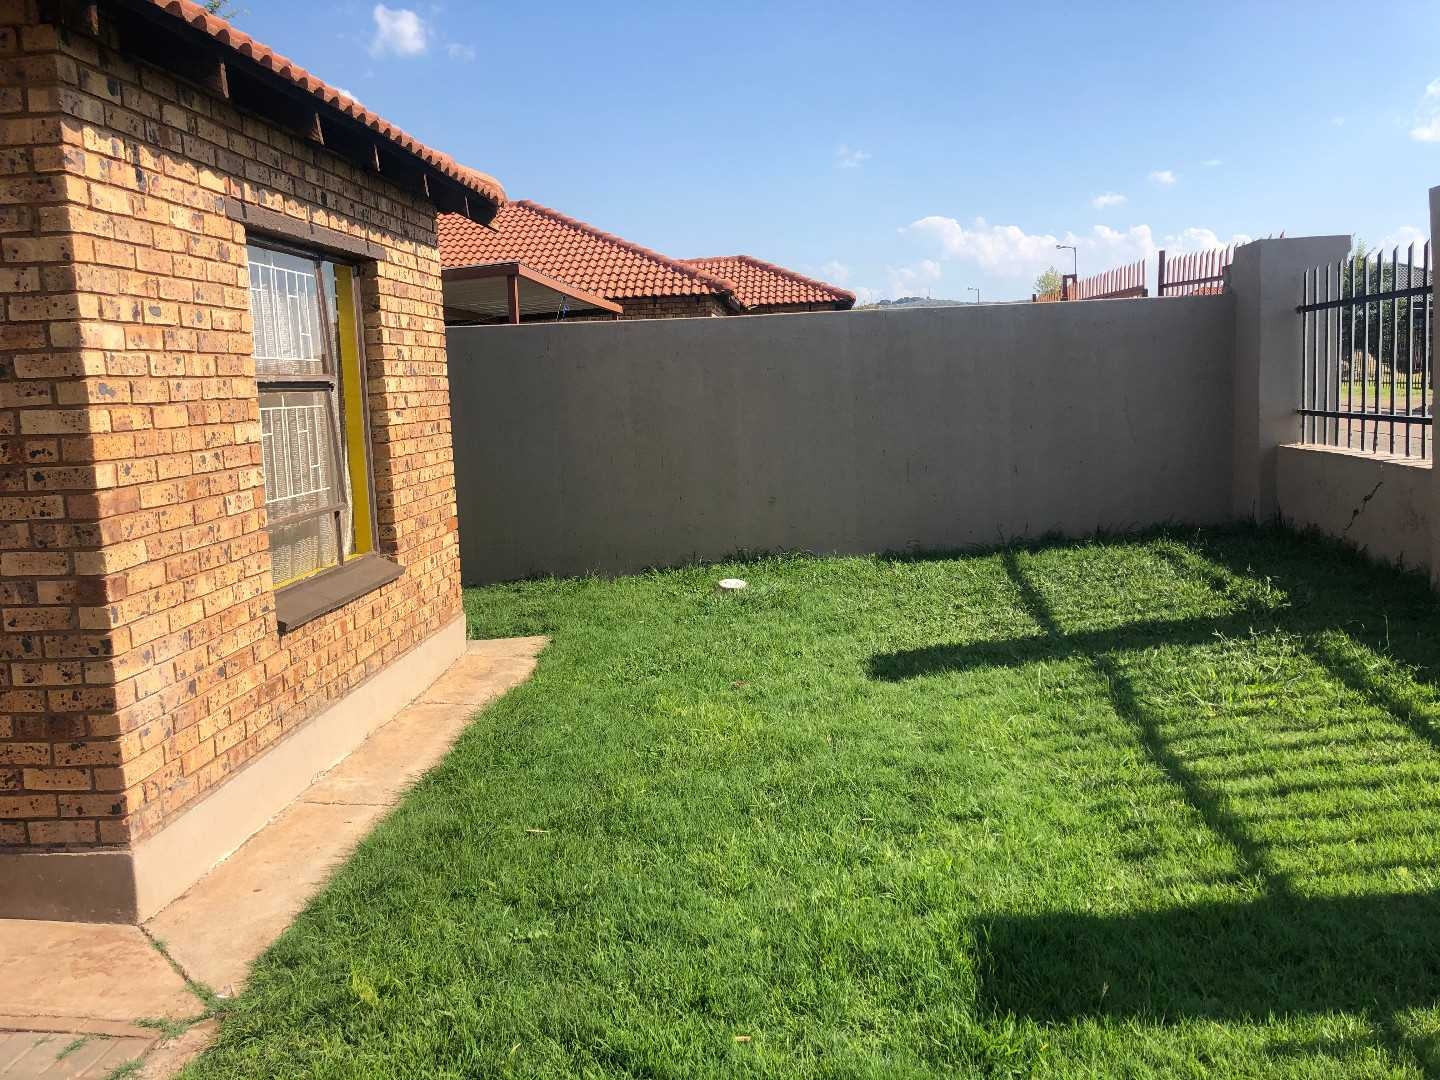 3 Bed For Sale in Karenpark